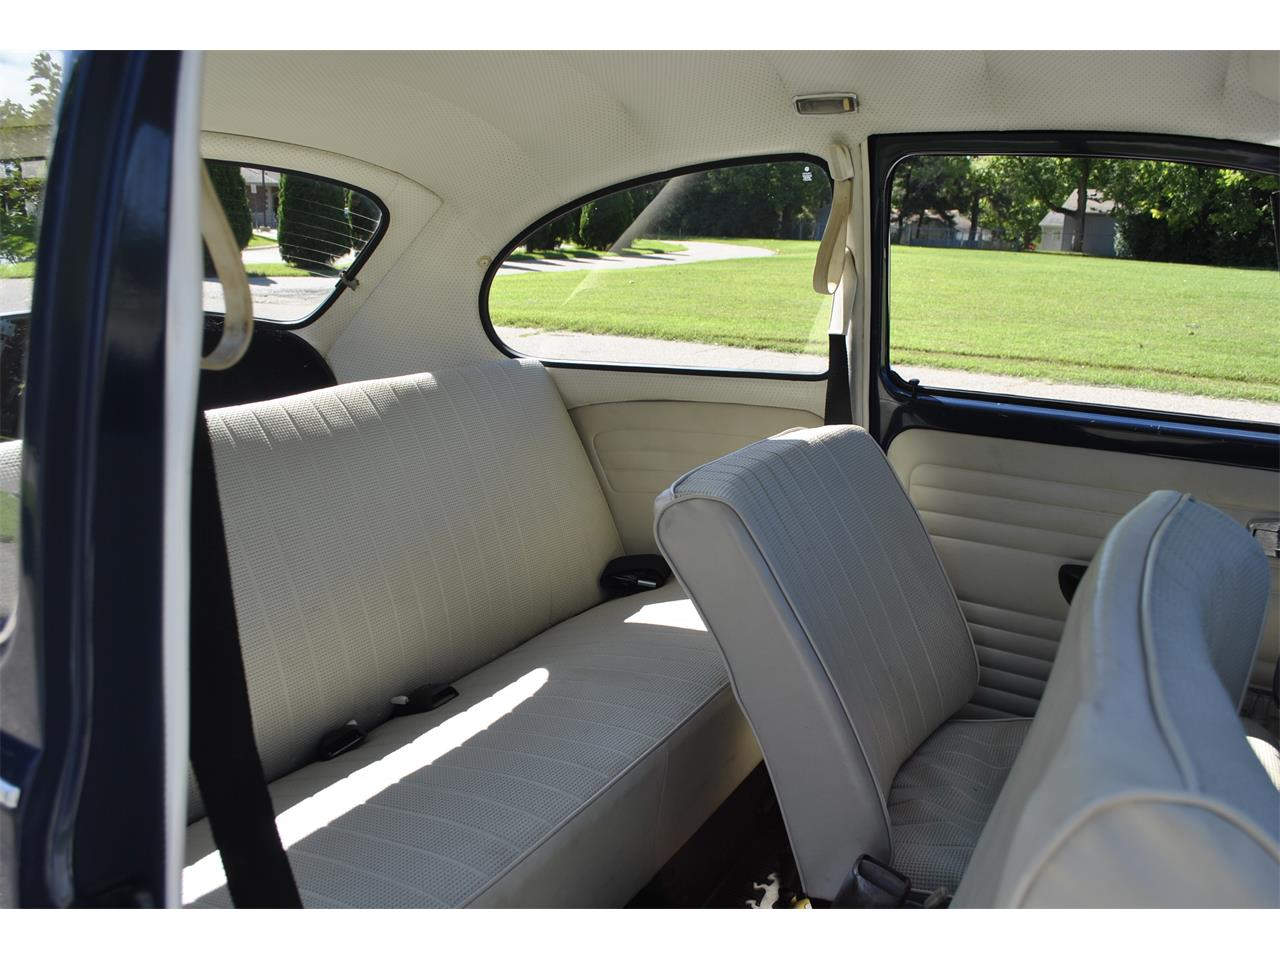 Large Picture of Classic '69 Beetle located in Indiana Auction Vehicle Offered by Earlywine Auctions - OP65